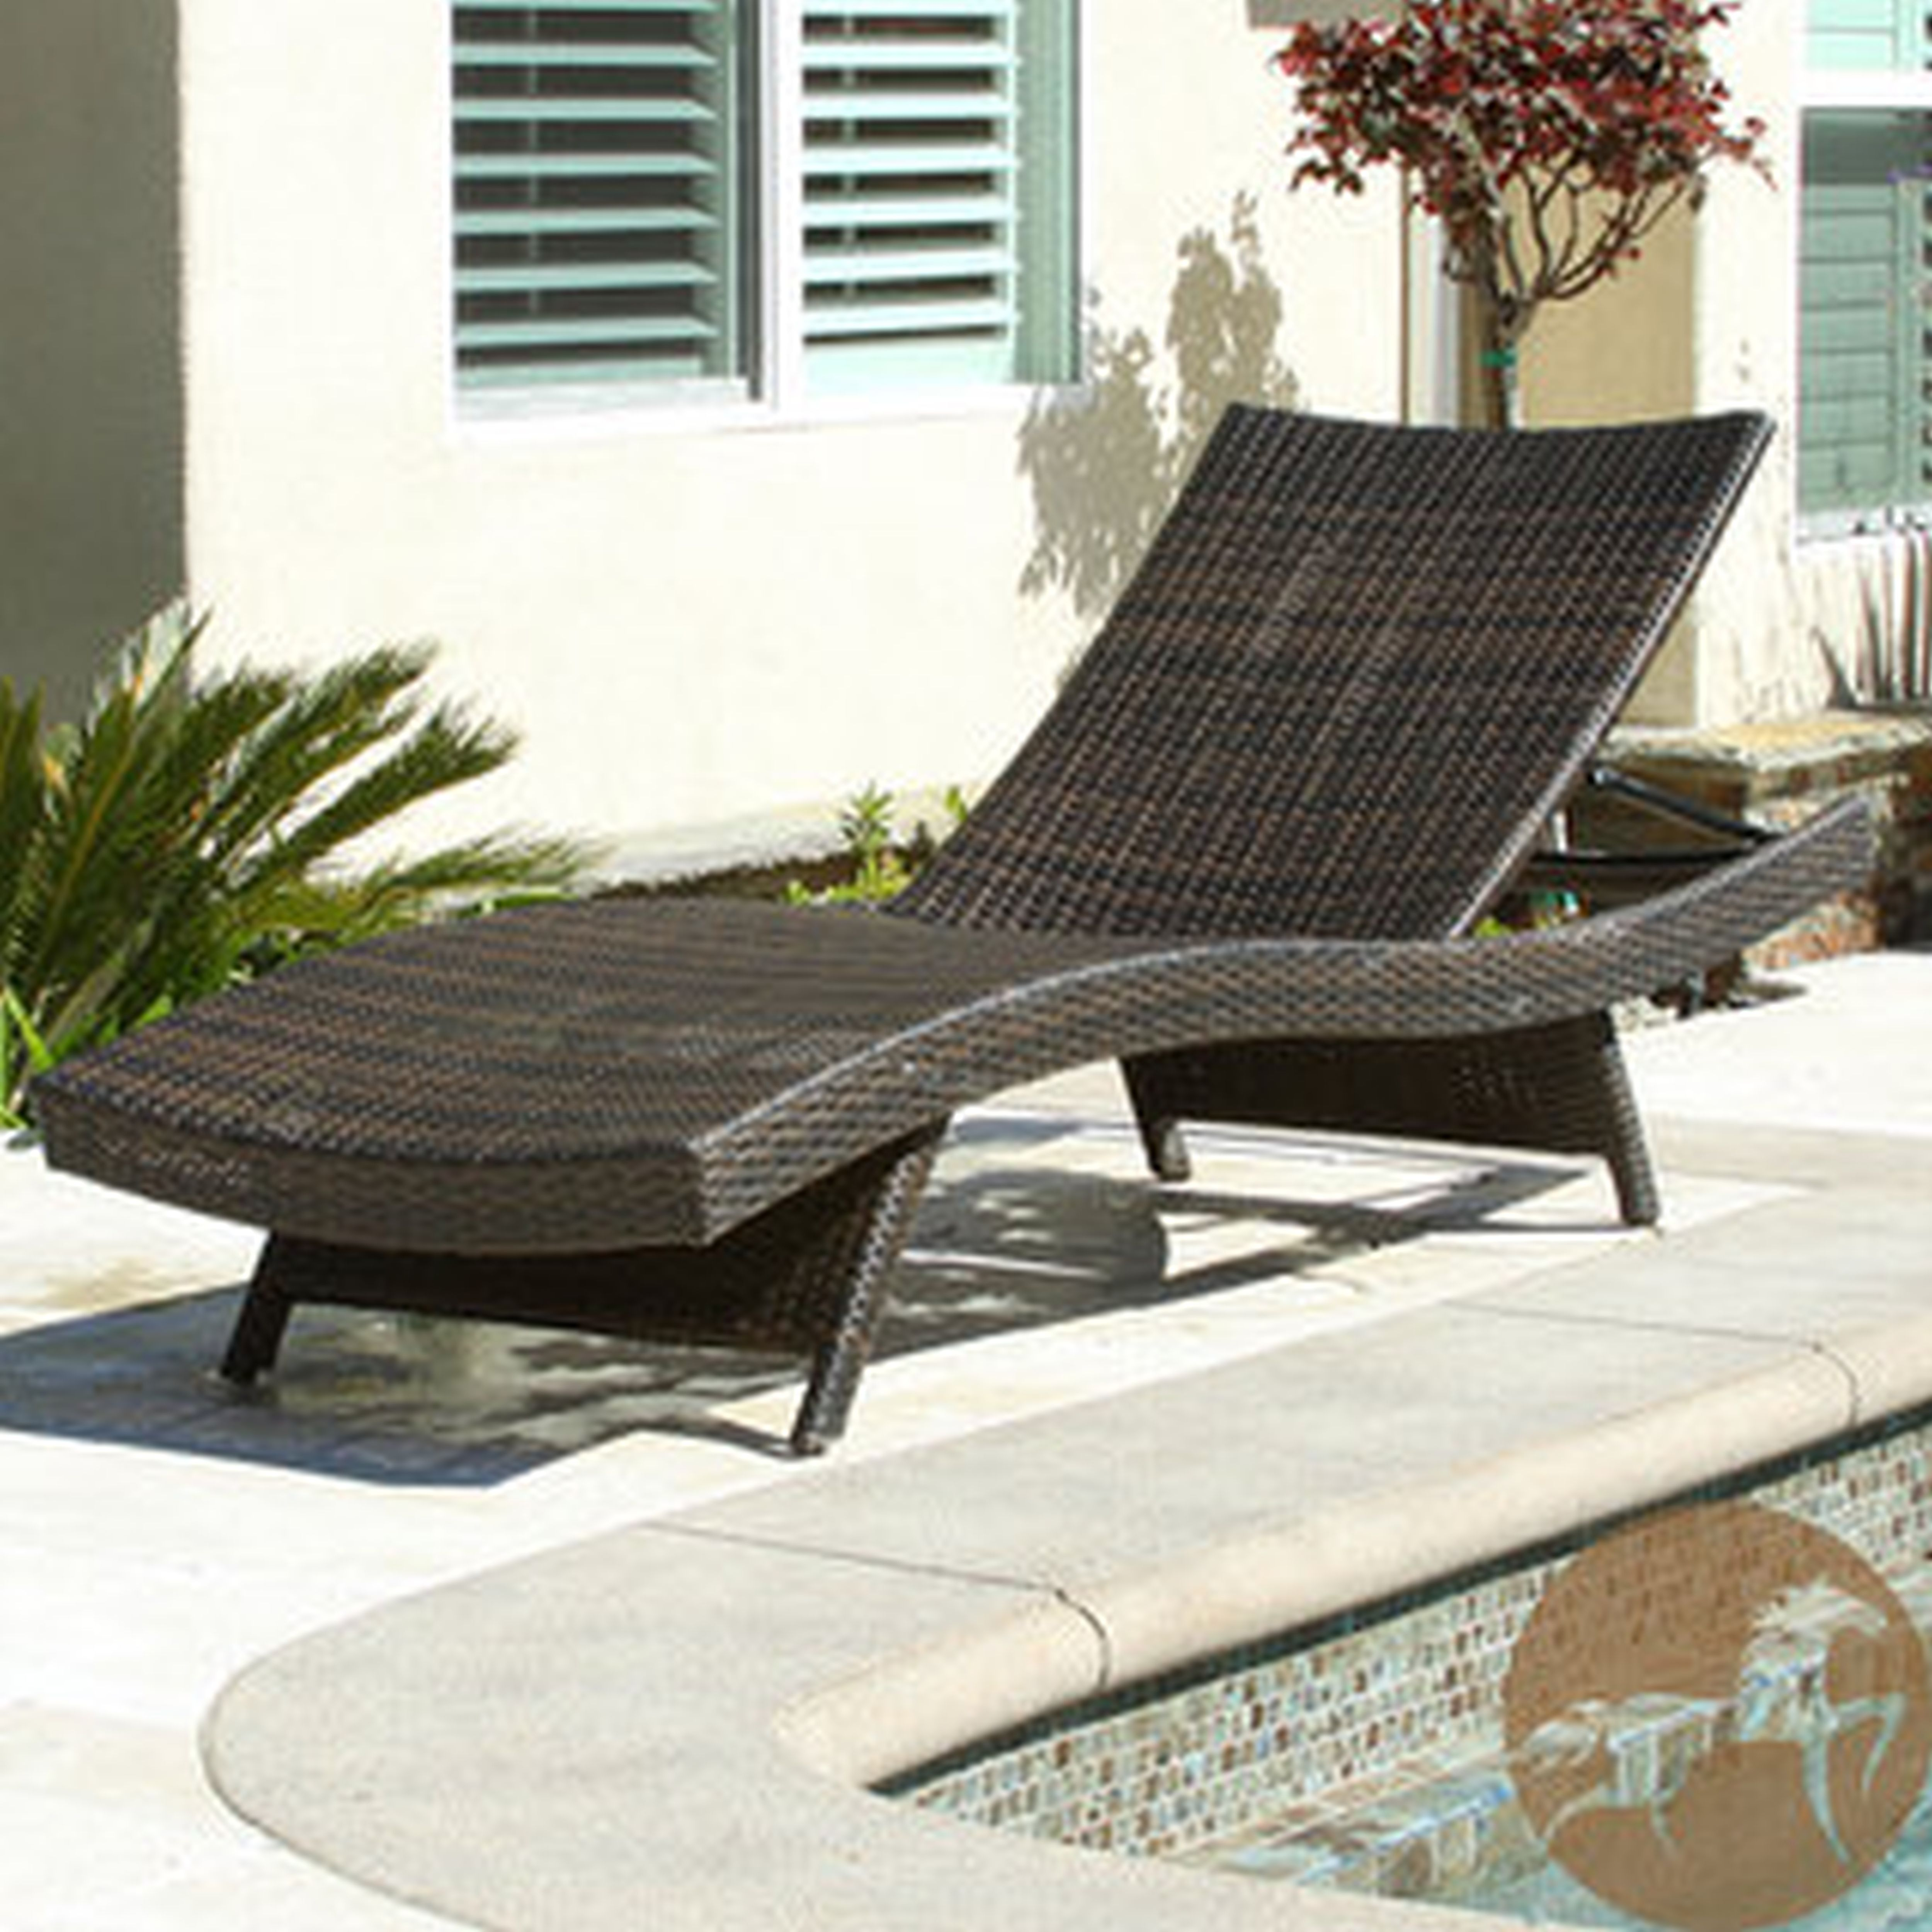 Wicker lounge outdoor furniture chairs seating for Bamboo chaise lounge